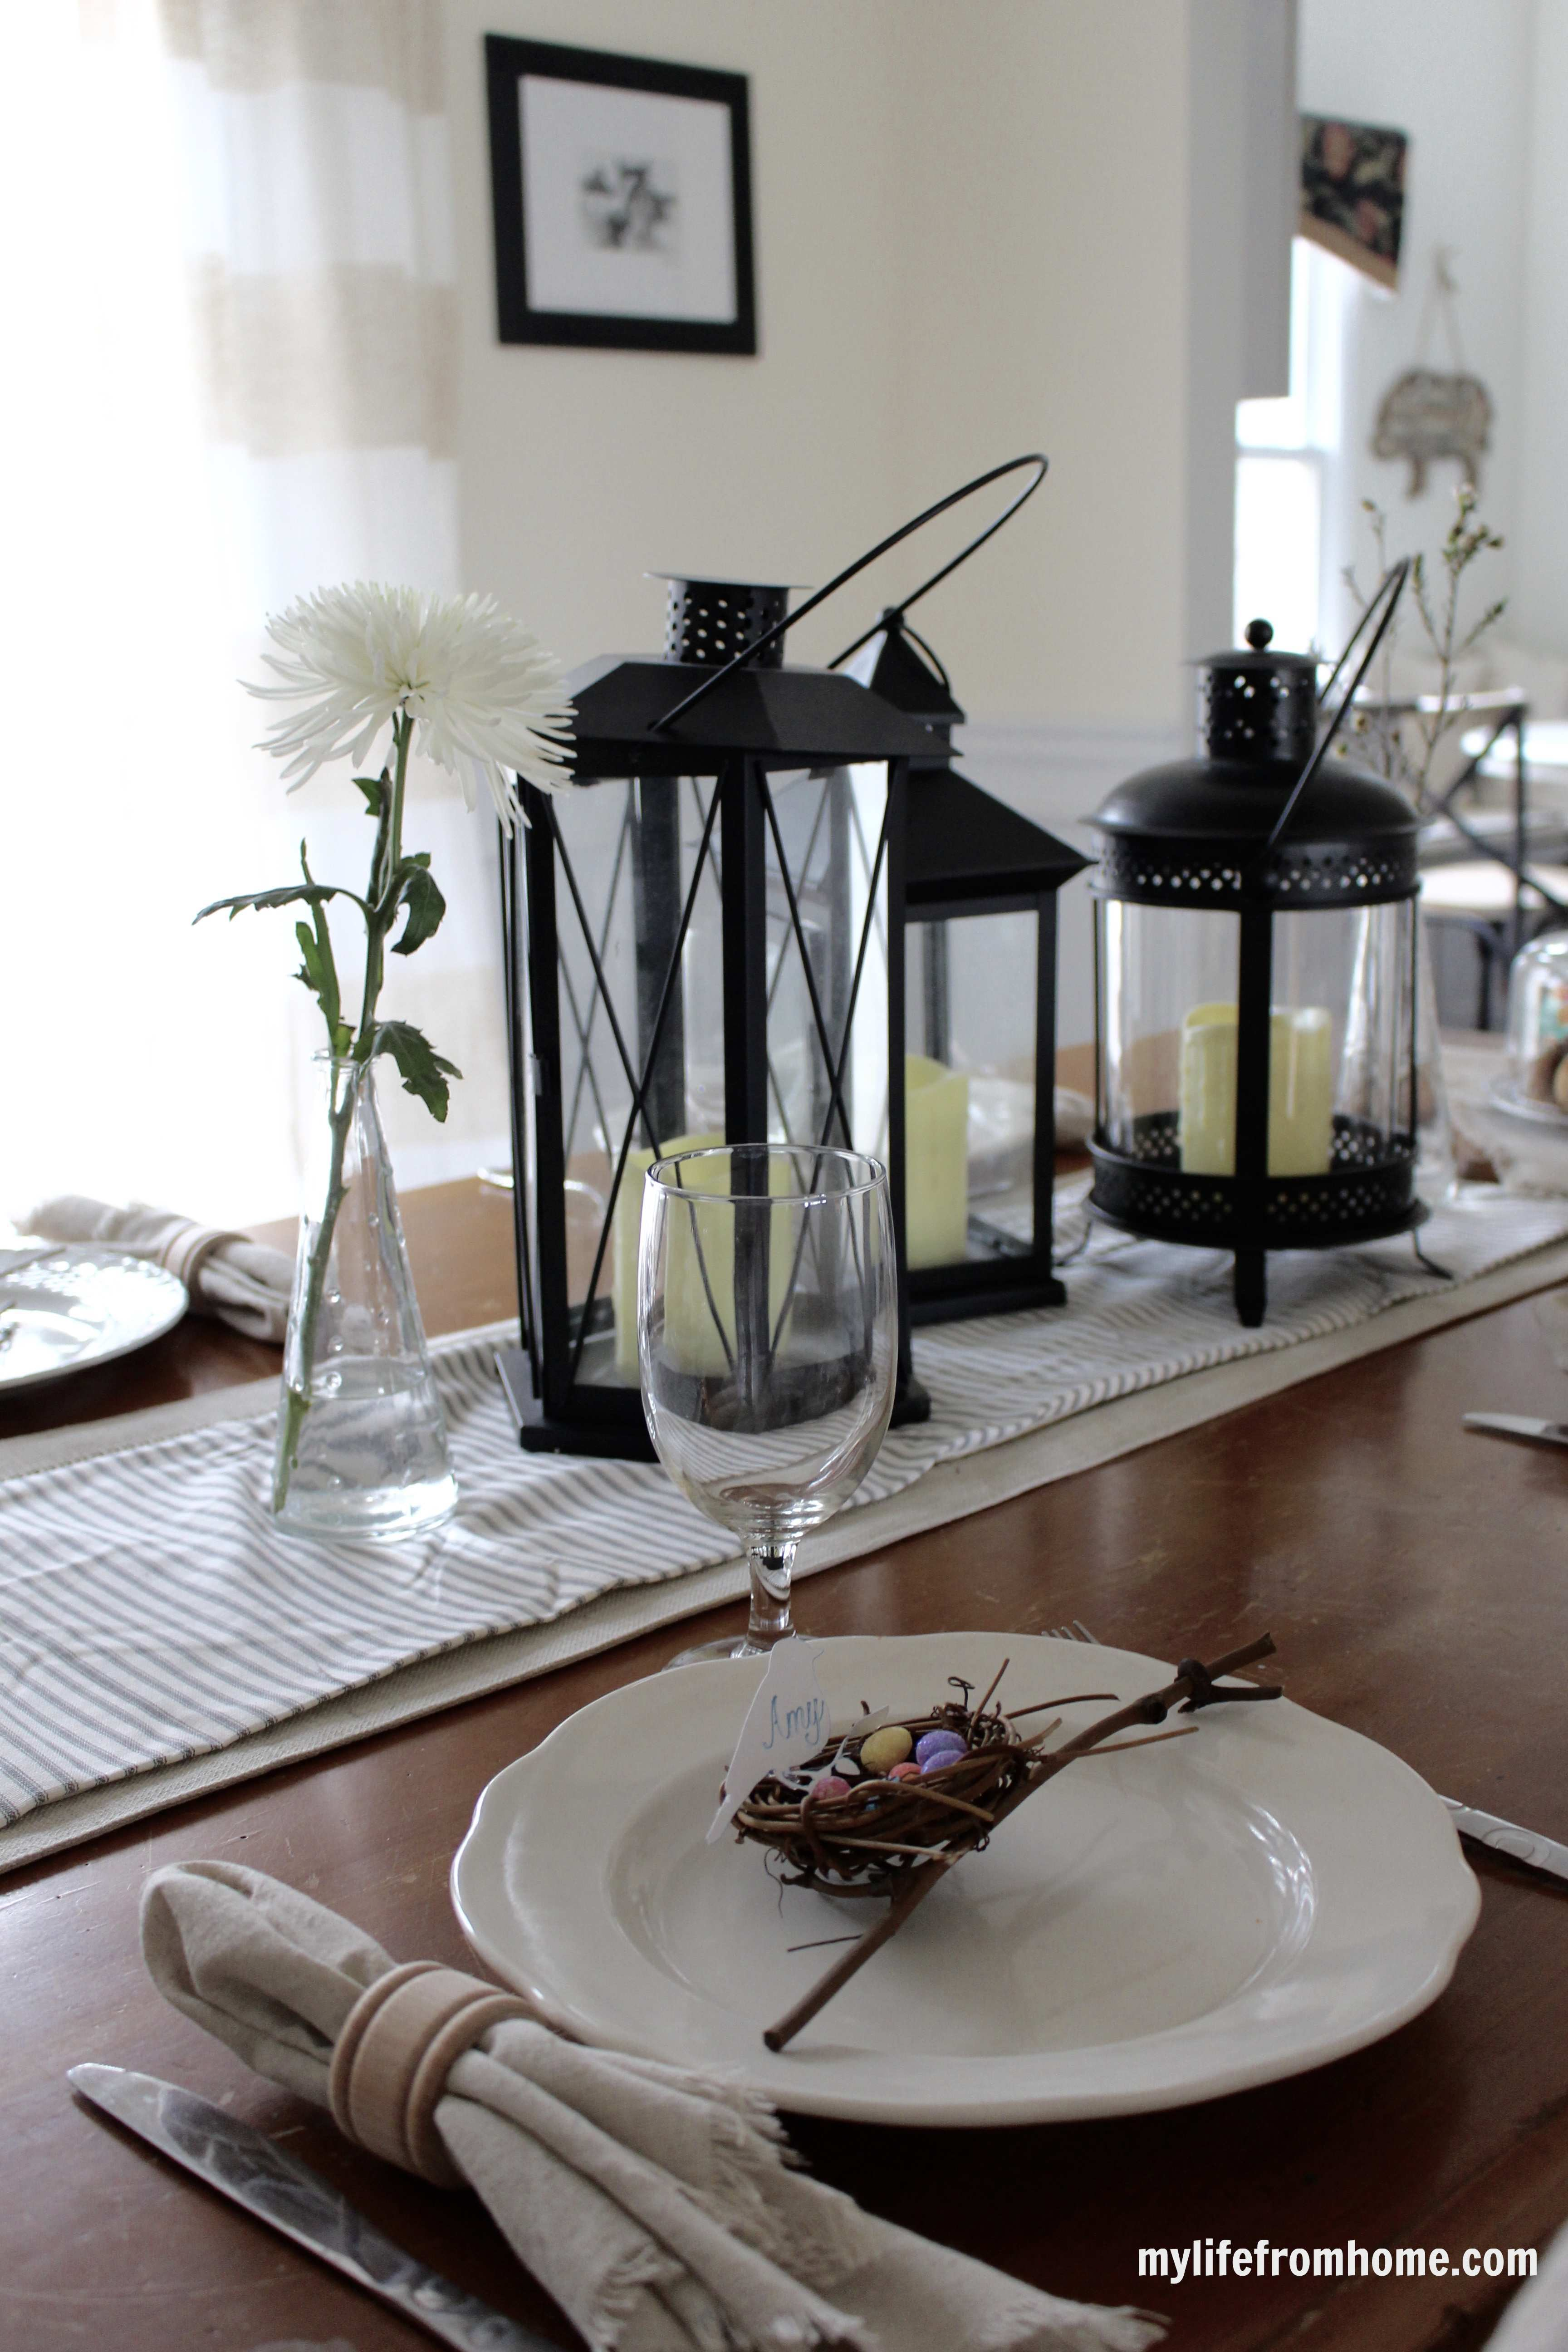 Easter Tablescape by www.mylifefromhome.com